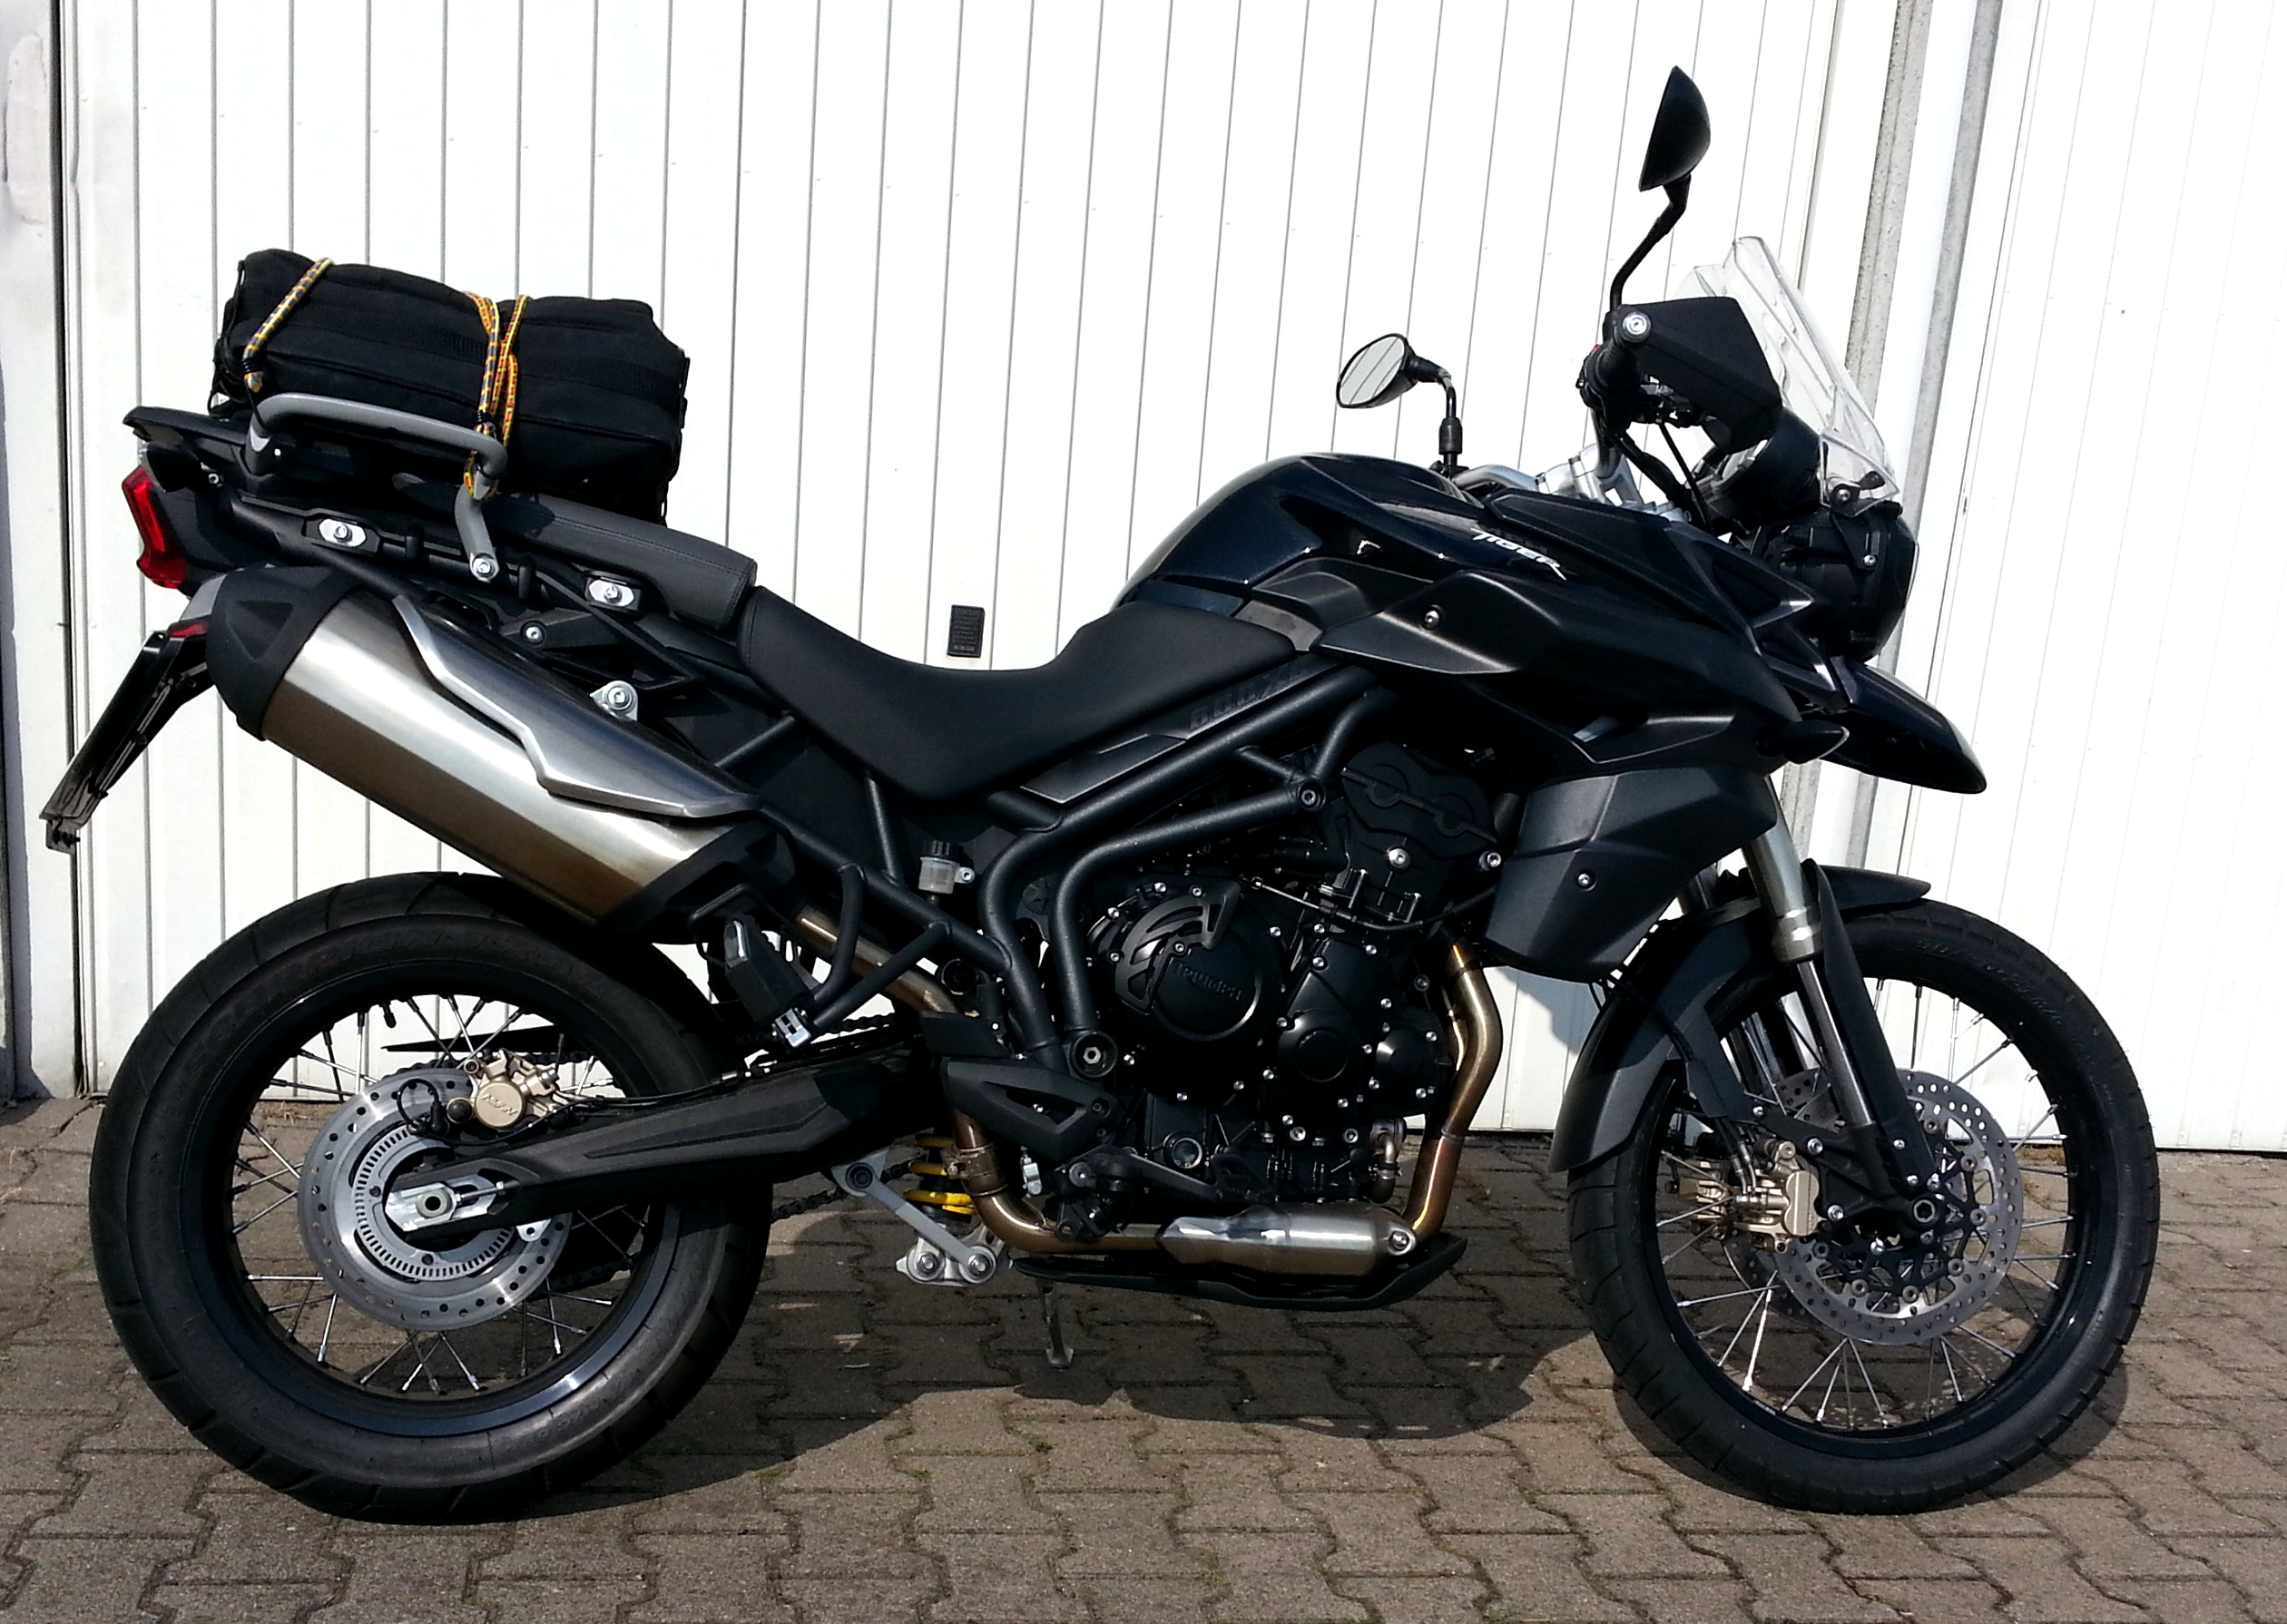 First Look: 2018 Triumph Tiger 800 XC and XR